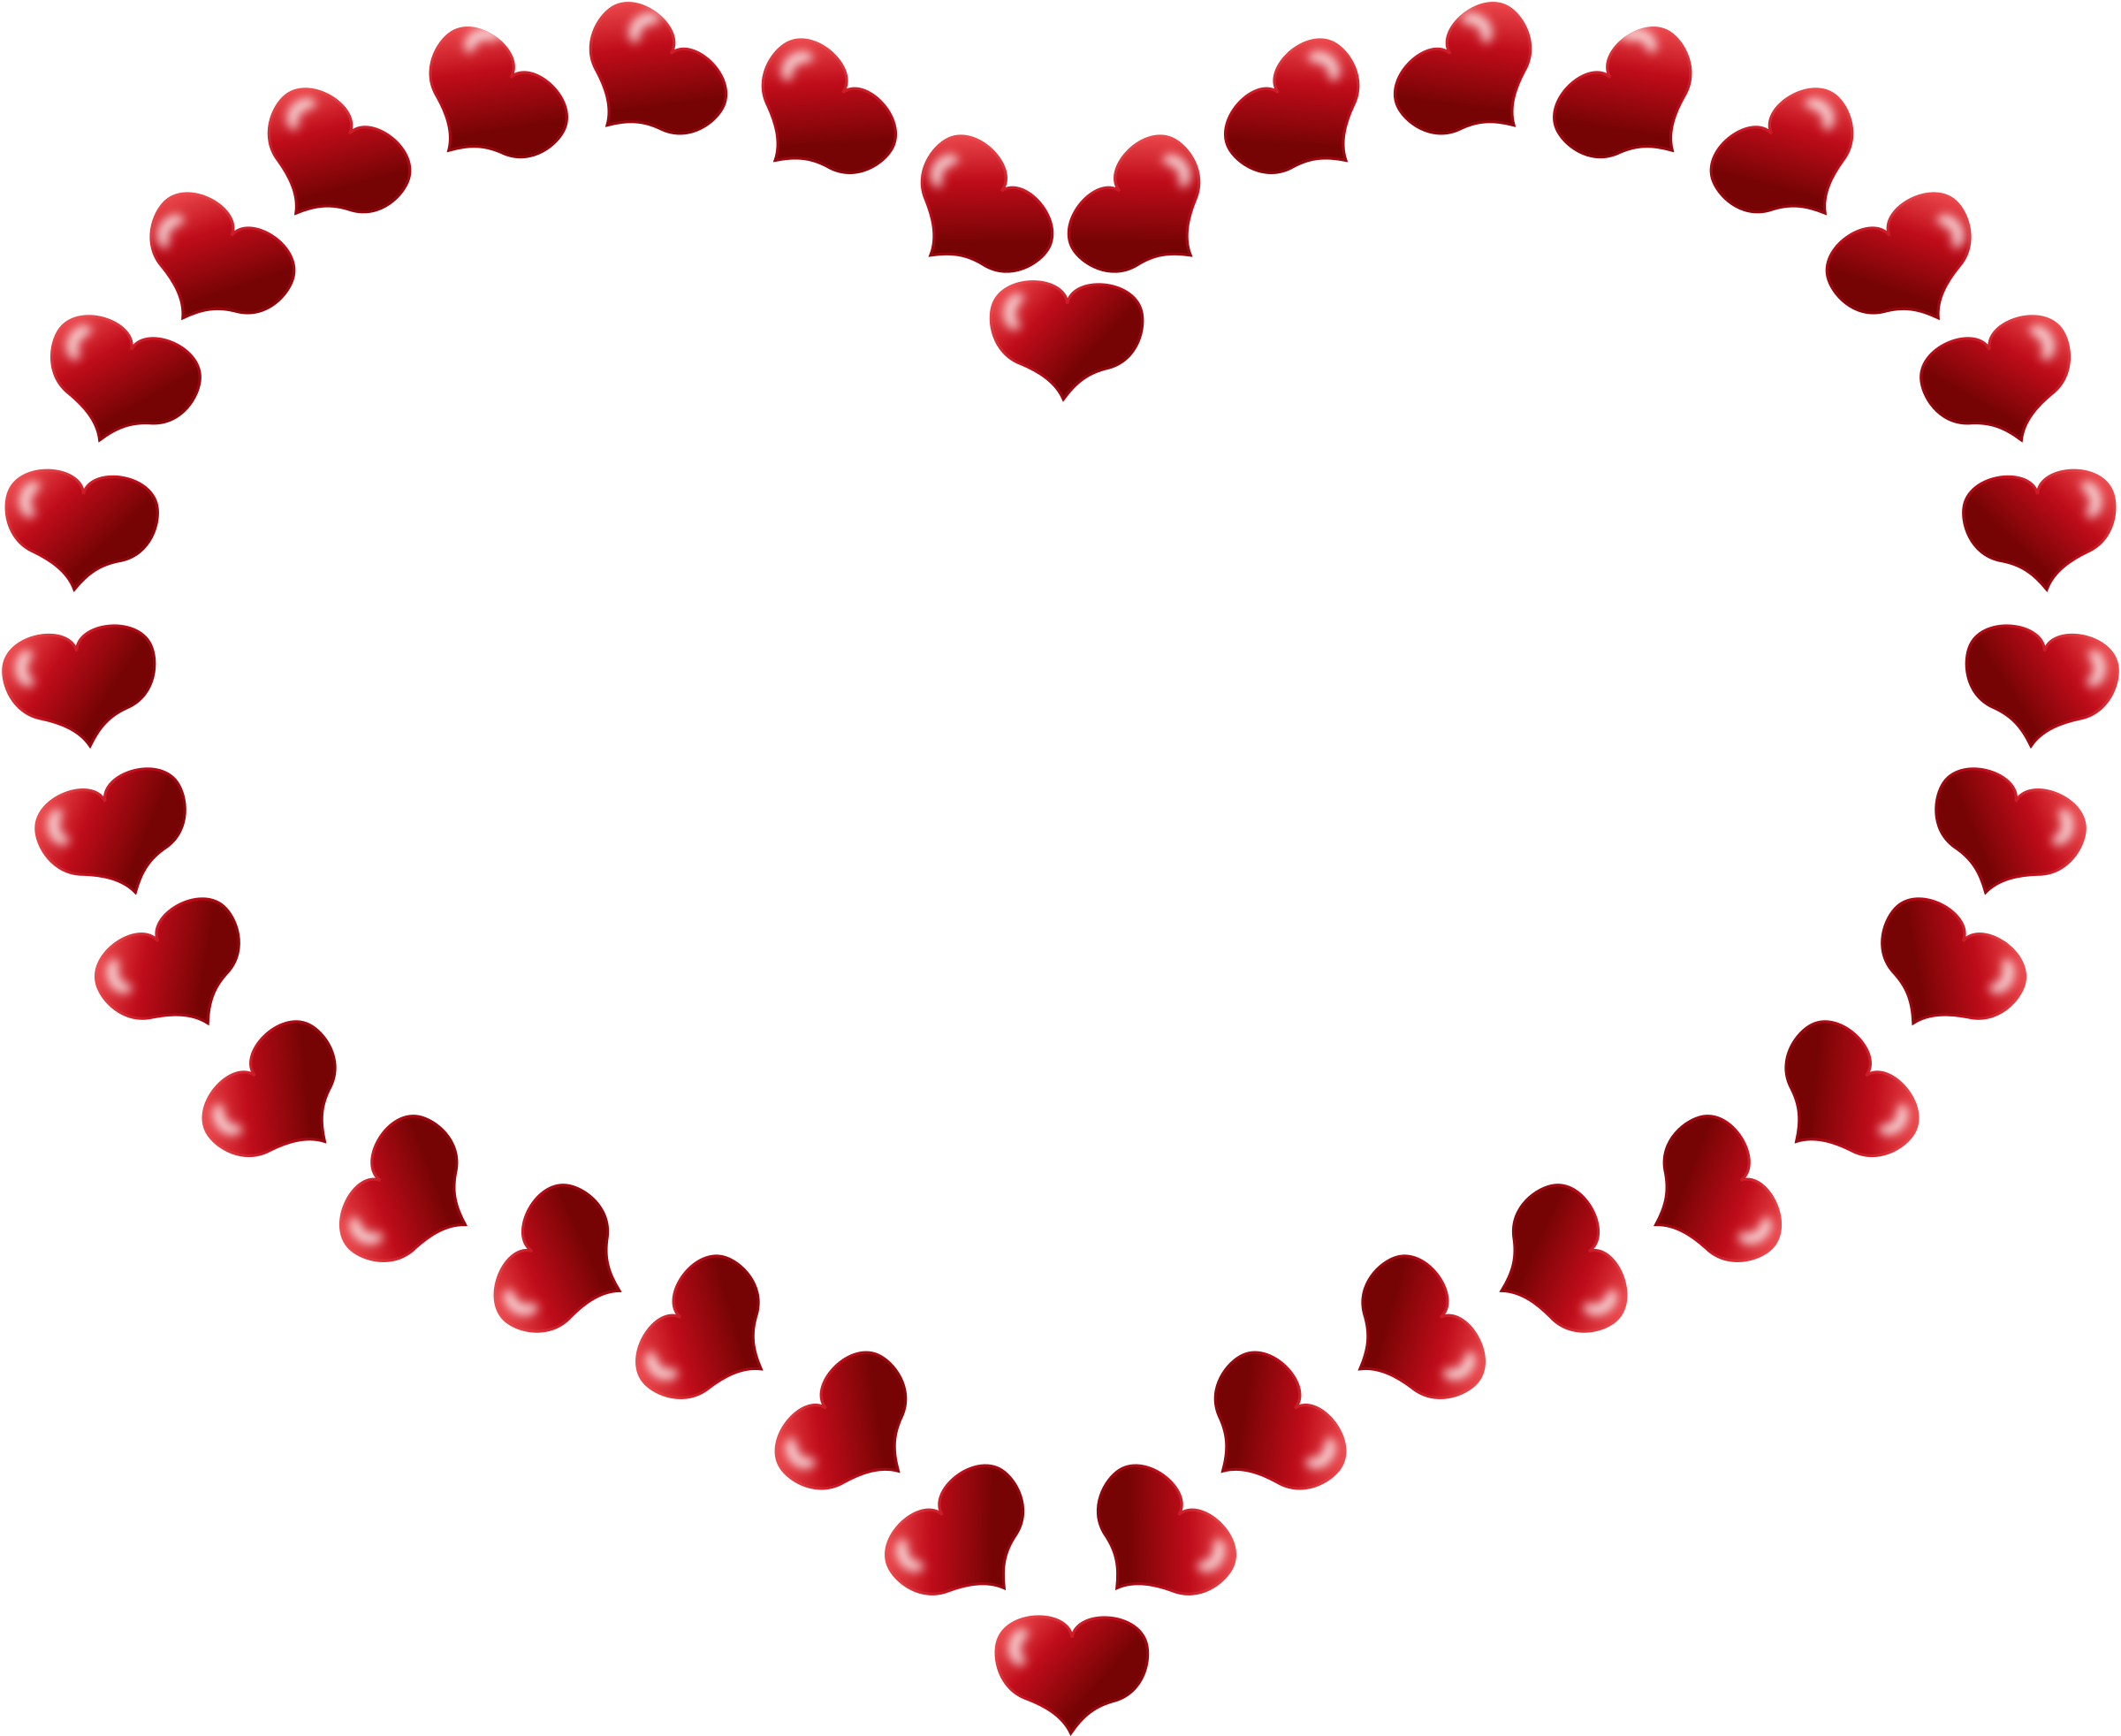 Small clip art hearts free free Clipart - Red Heart Shaped Border with Little Hearts free